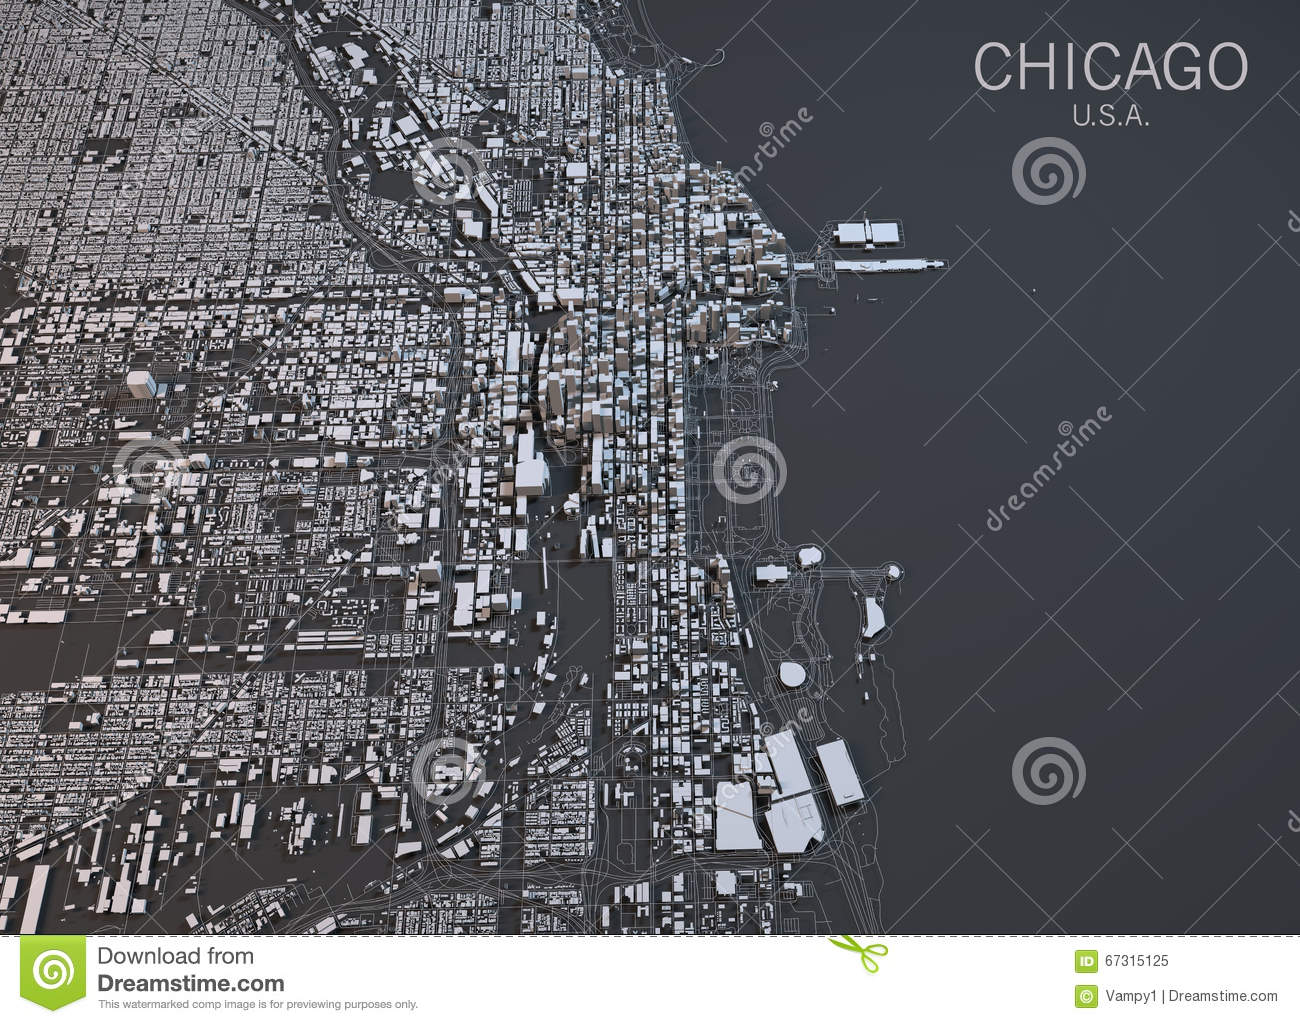 Chicago Map Satellite View United States Stock Illustration - Chicago map download